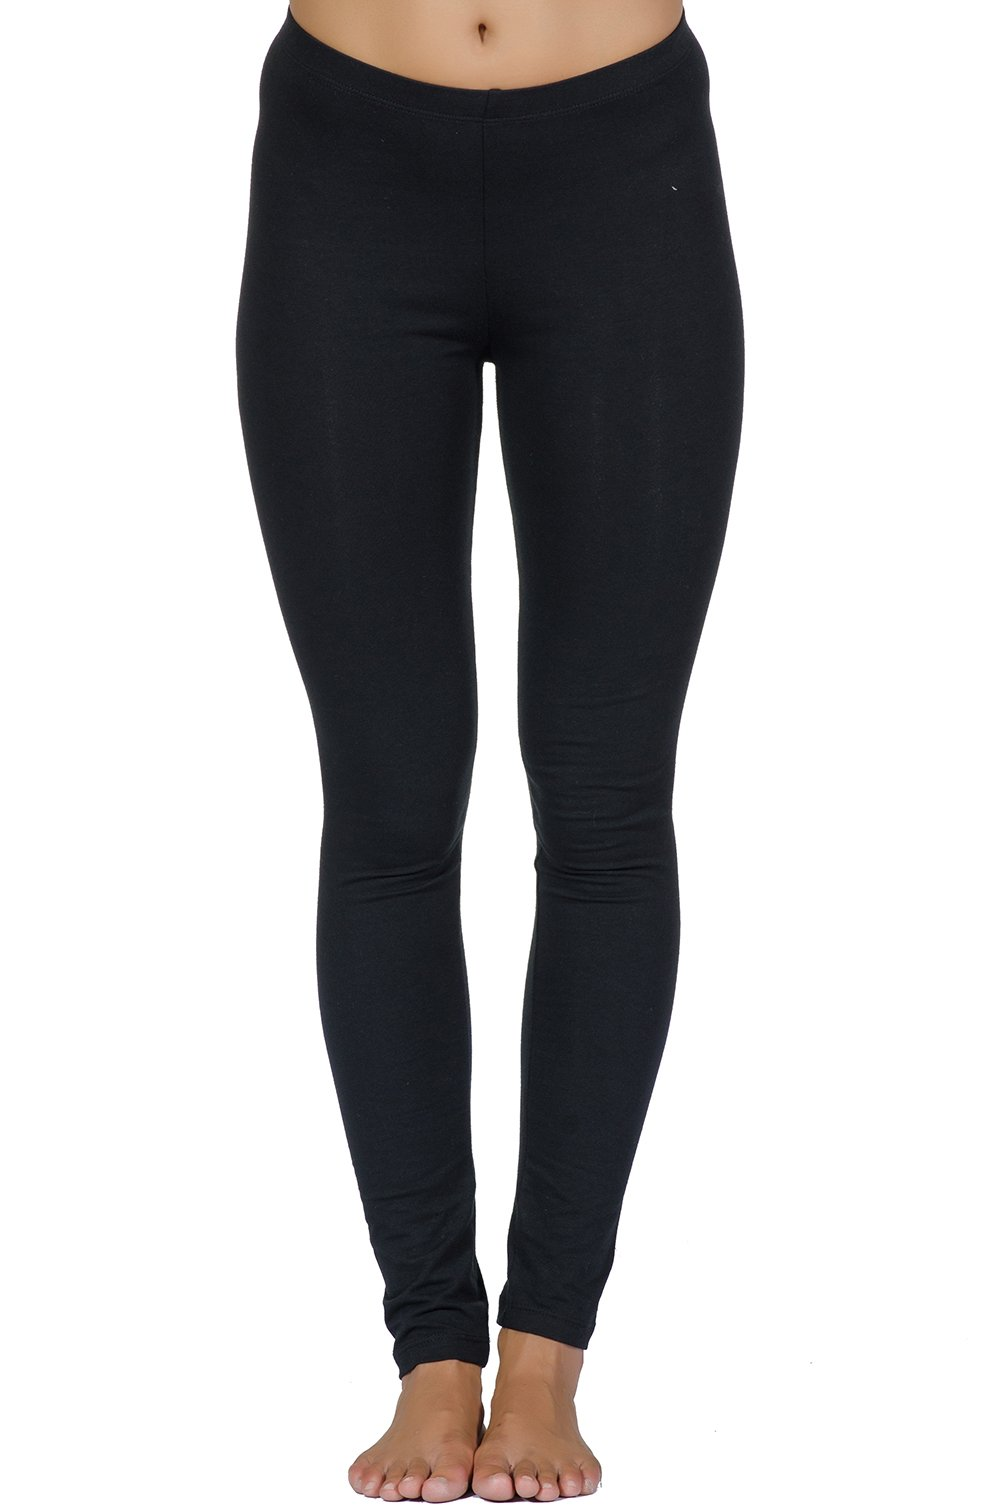 Beyond Clean Karma : Women's Organic Cotton Balanced Lean Ankle Legging By In Touch (x-large, black)